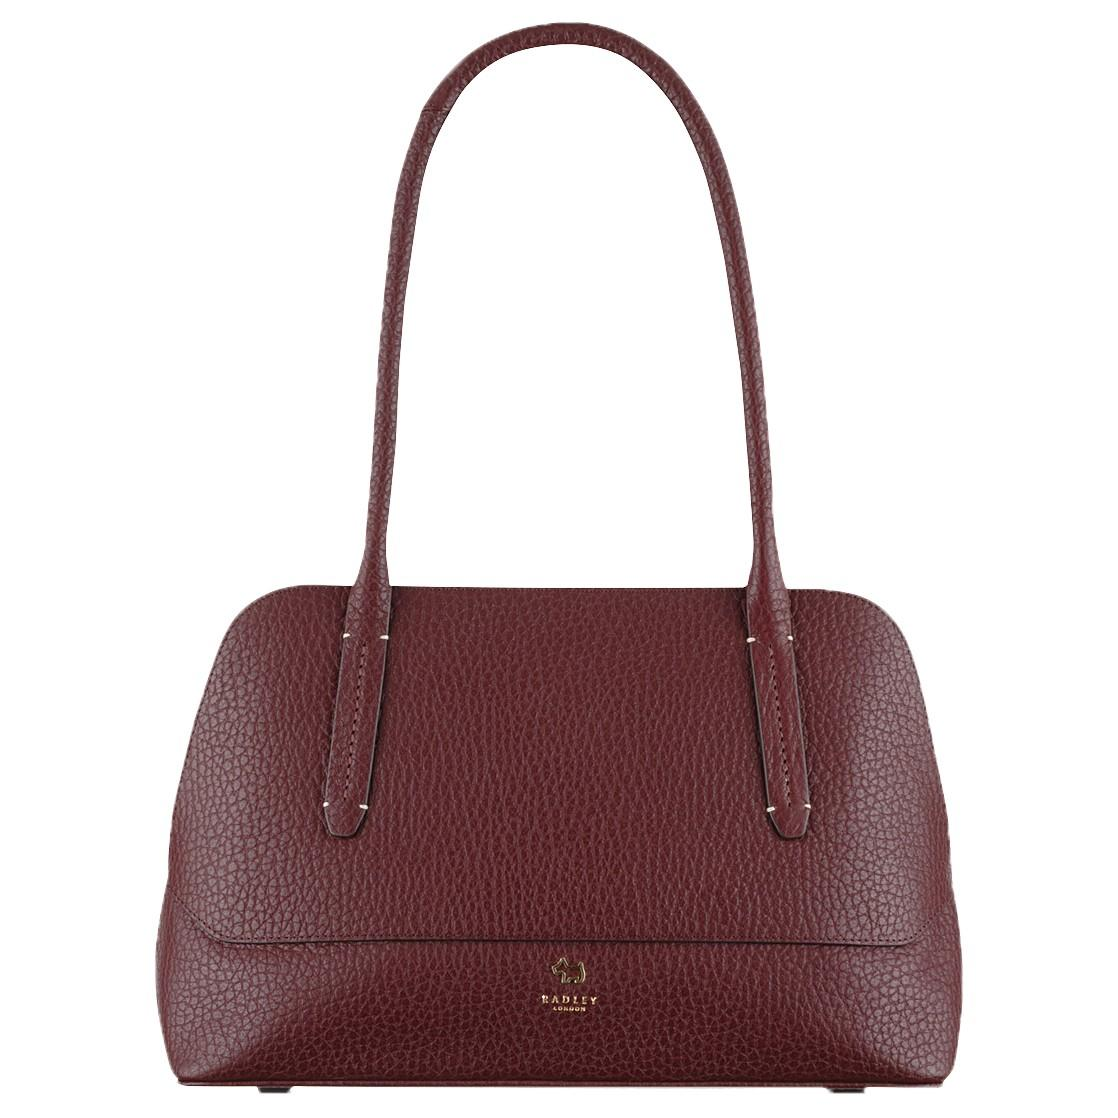 Radley Watches John Lewis. 5/1/ 1 Comment Today only - 13/12 get 20% off ALL Carvela bags and purses at Shoeaholics using code XMAS12 works on top of existing sale as well so some amazing prices to be had. Buy women's clothes online at Myer. Shop the latest womens fashion styles and clothing online from top brands.